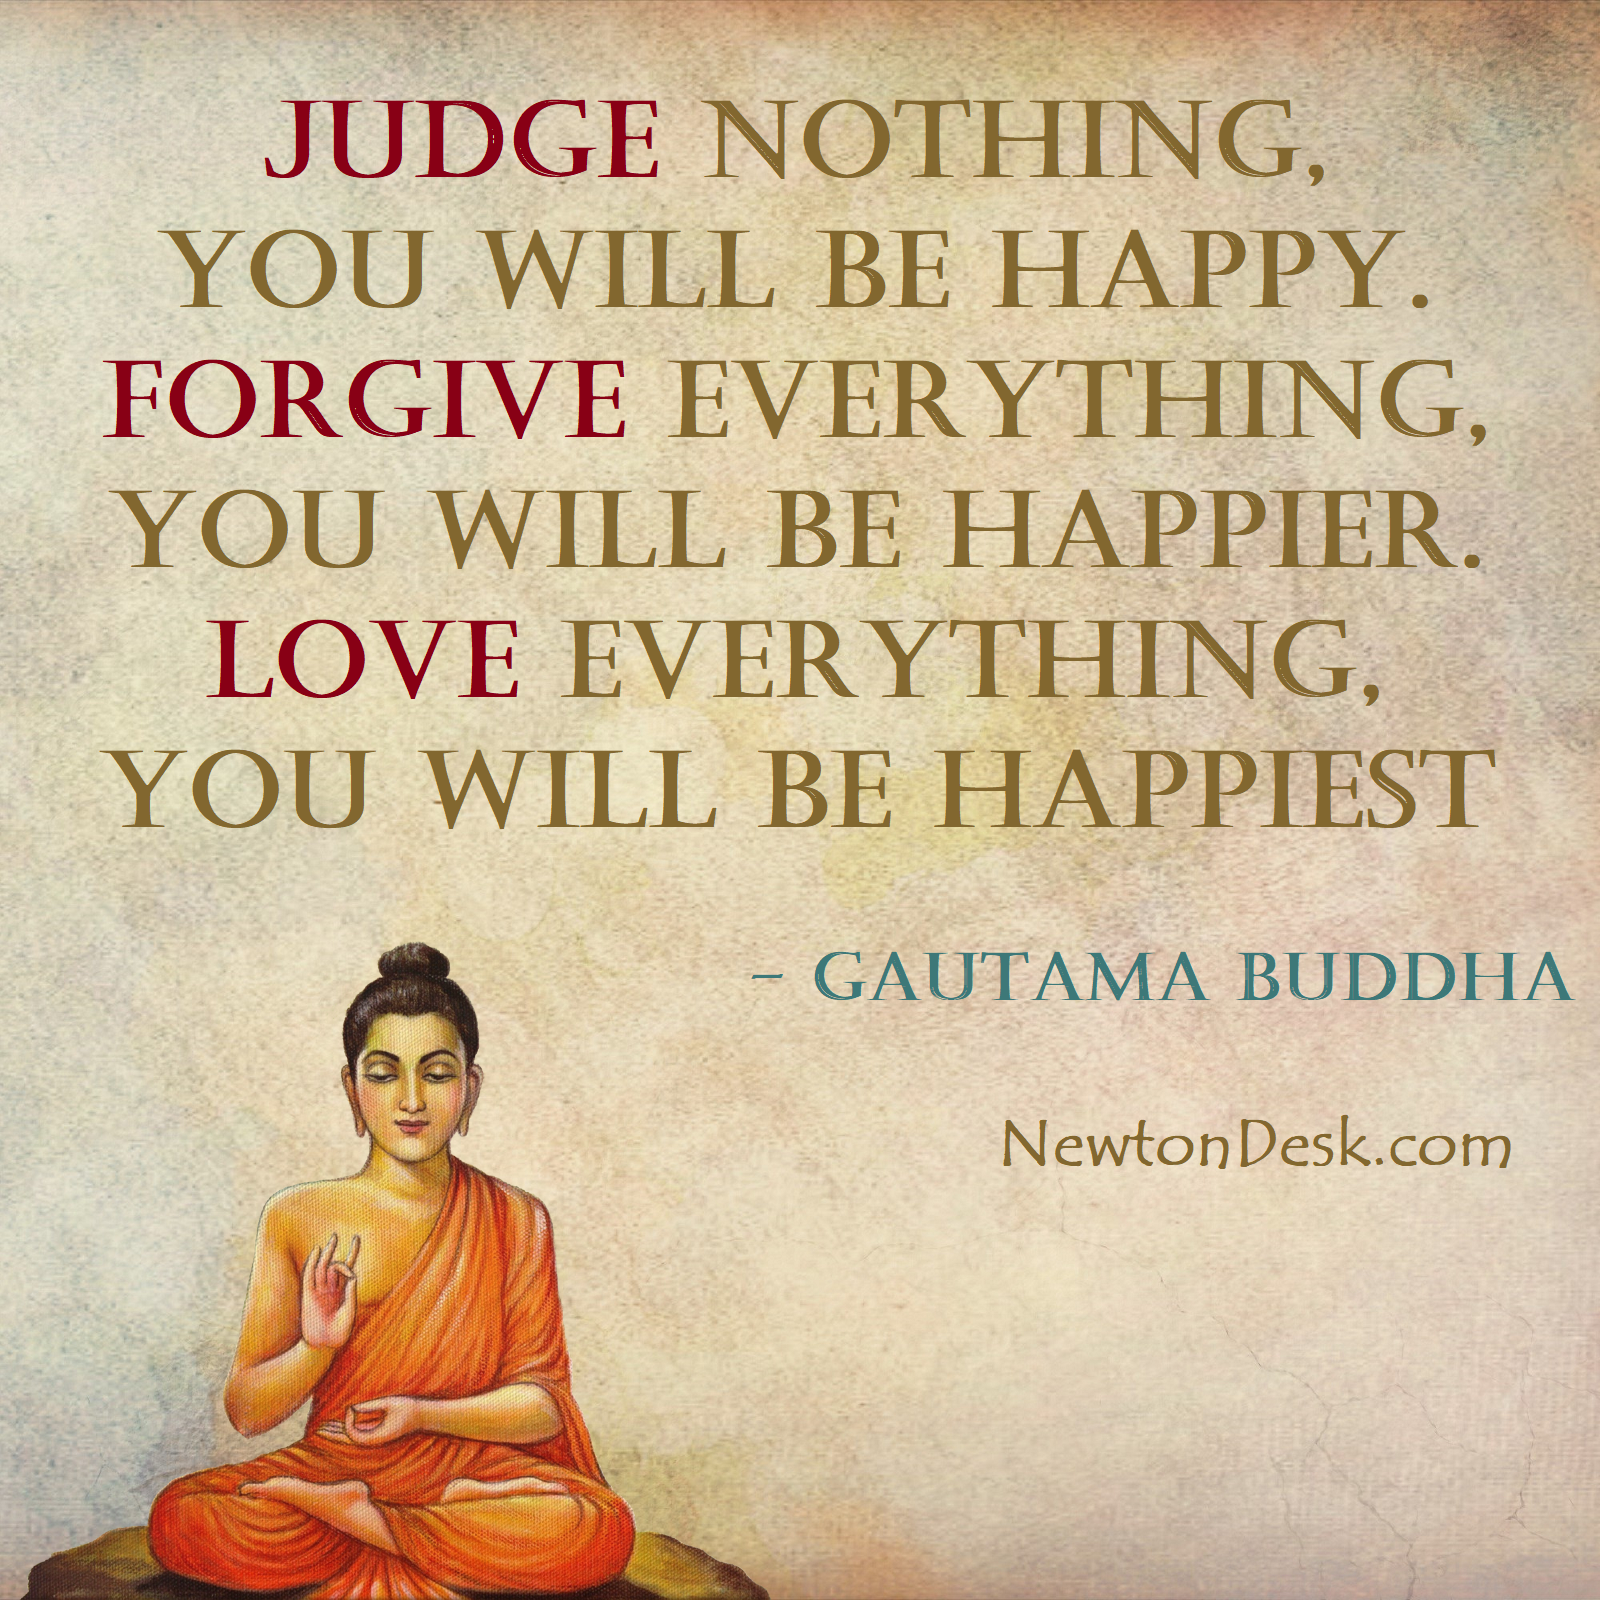 Judge Nothing Forgive Love Everything Buddha Quotes On Happiness